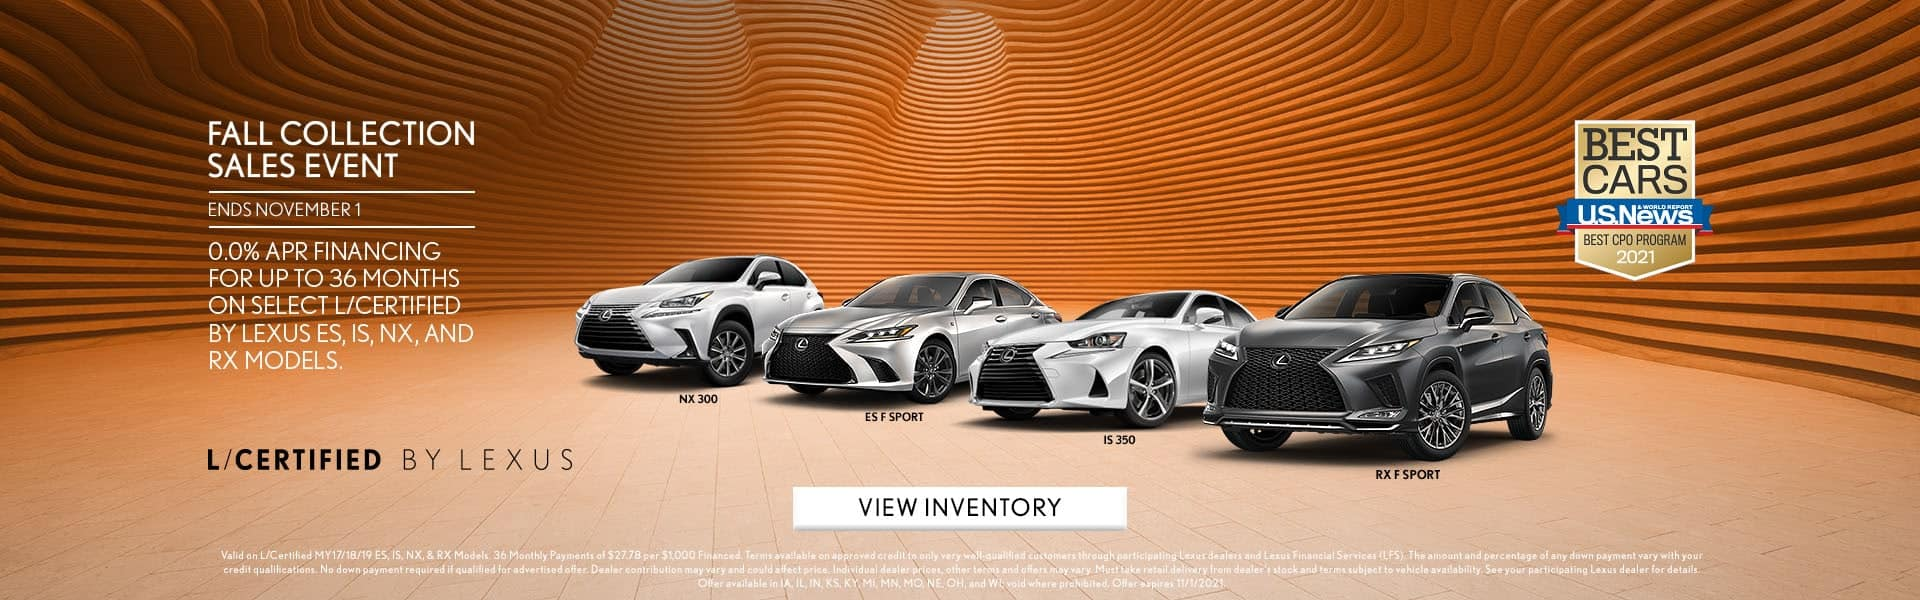 L/Certified Lexus Fall Collection Sales Event